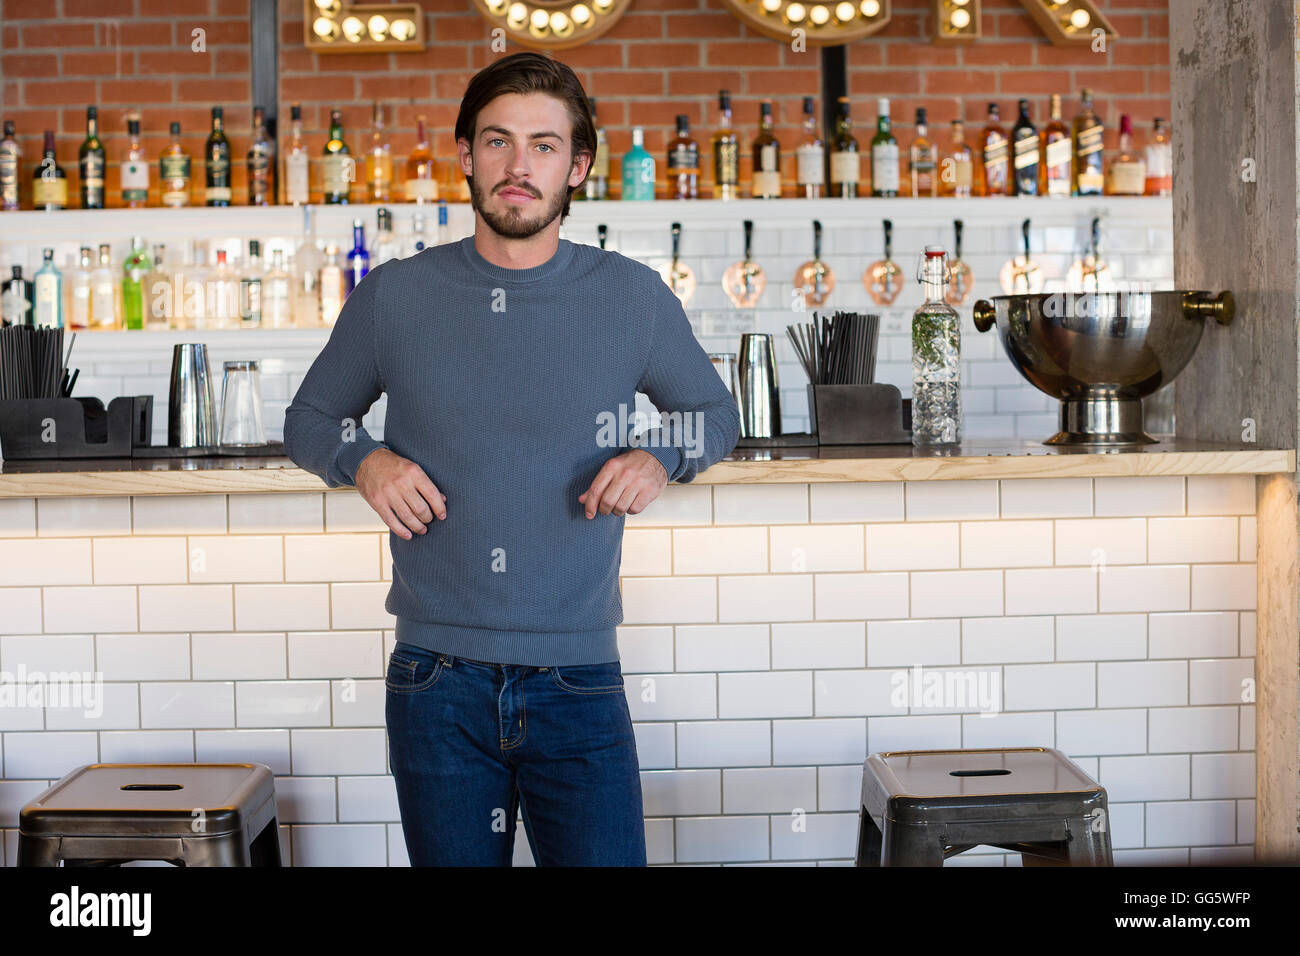 Portrait of a young man standing at bar counter - Stock Image